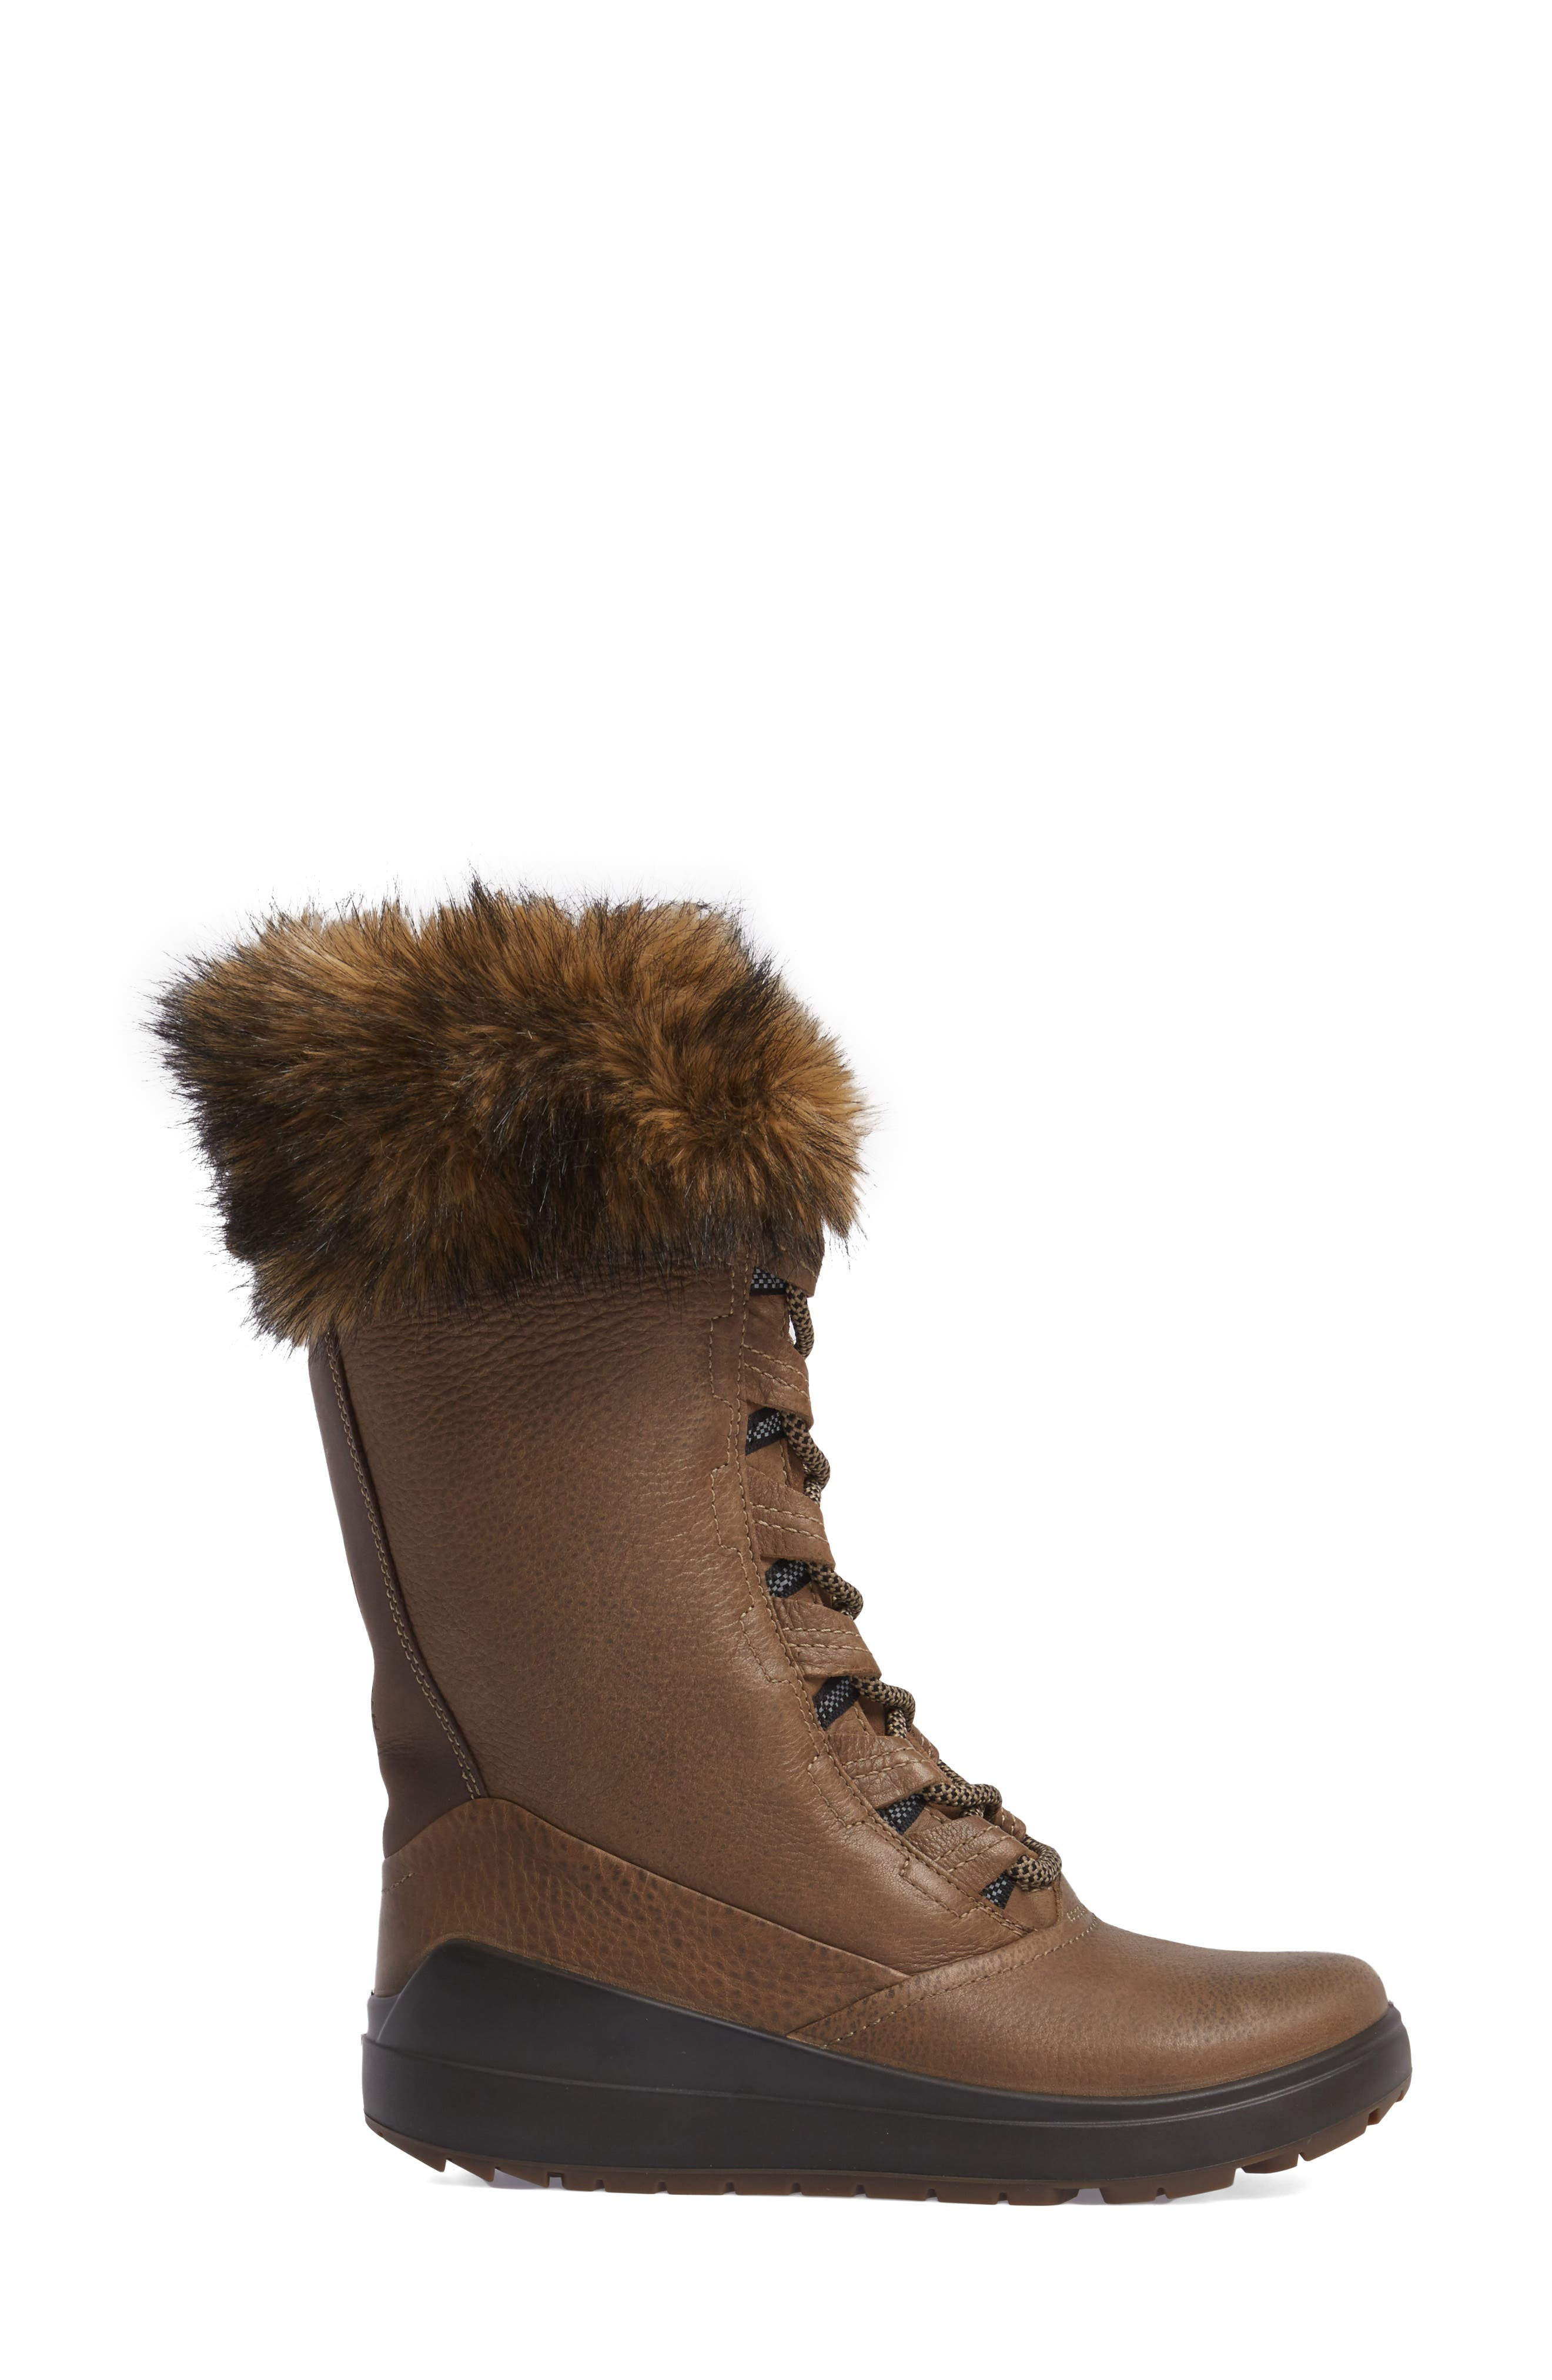 Noyce Siberia Hydromax Water Resistant Winter Boot with Faux Fur Trim,                             Alternate thumbnail 3, color,                             212